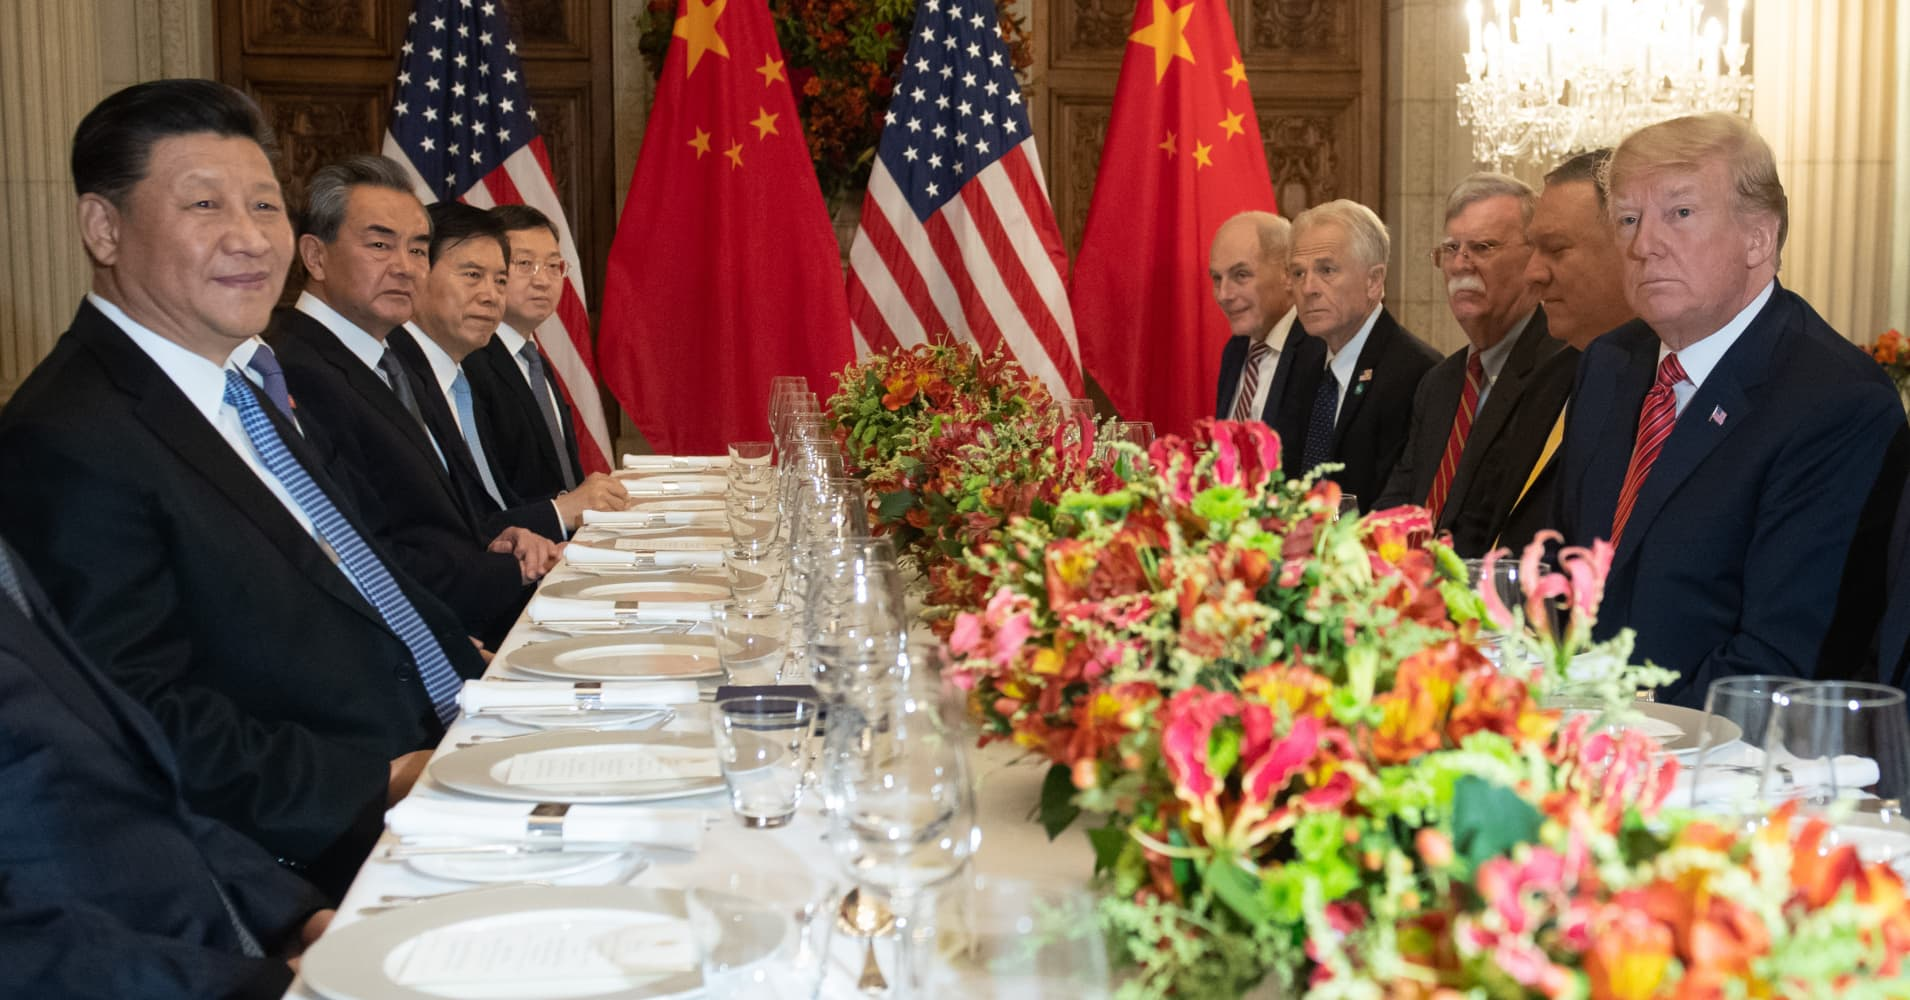 U.S. President Donald Trump, U.S. Secretary of State Mike Pompeo and members of their delegation hold a dinner meeting with Chinese President Xi Jinping, Chinese Foreign Affairs Minister Wang Yi and Chinese government representatives at the end of a G-20 summit in Buenos Aires, on Dec. 01, 2018.